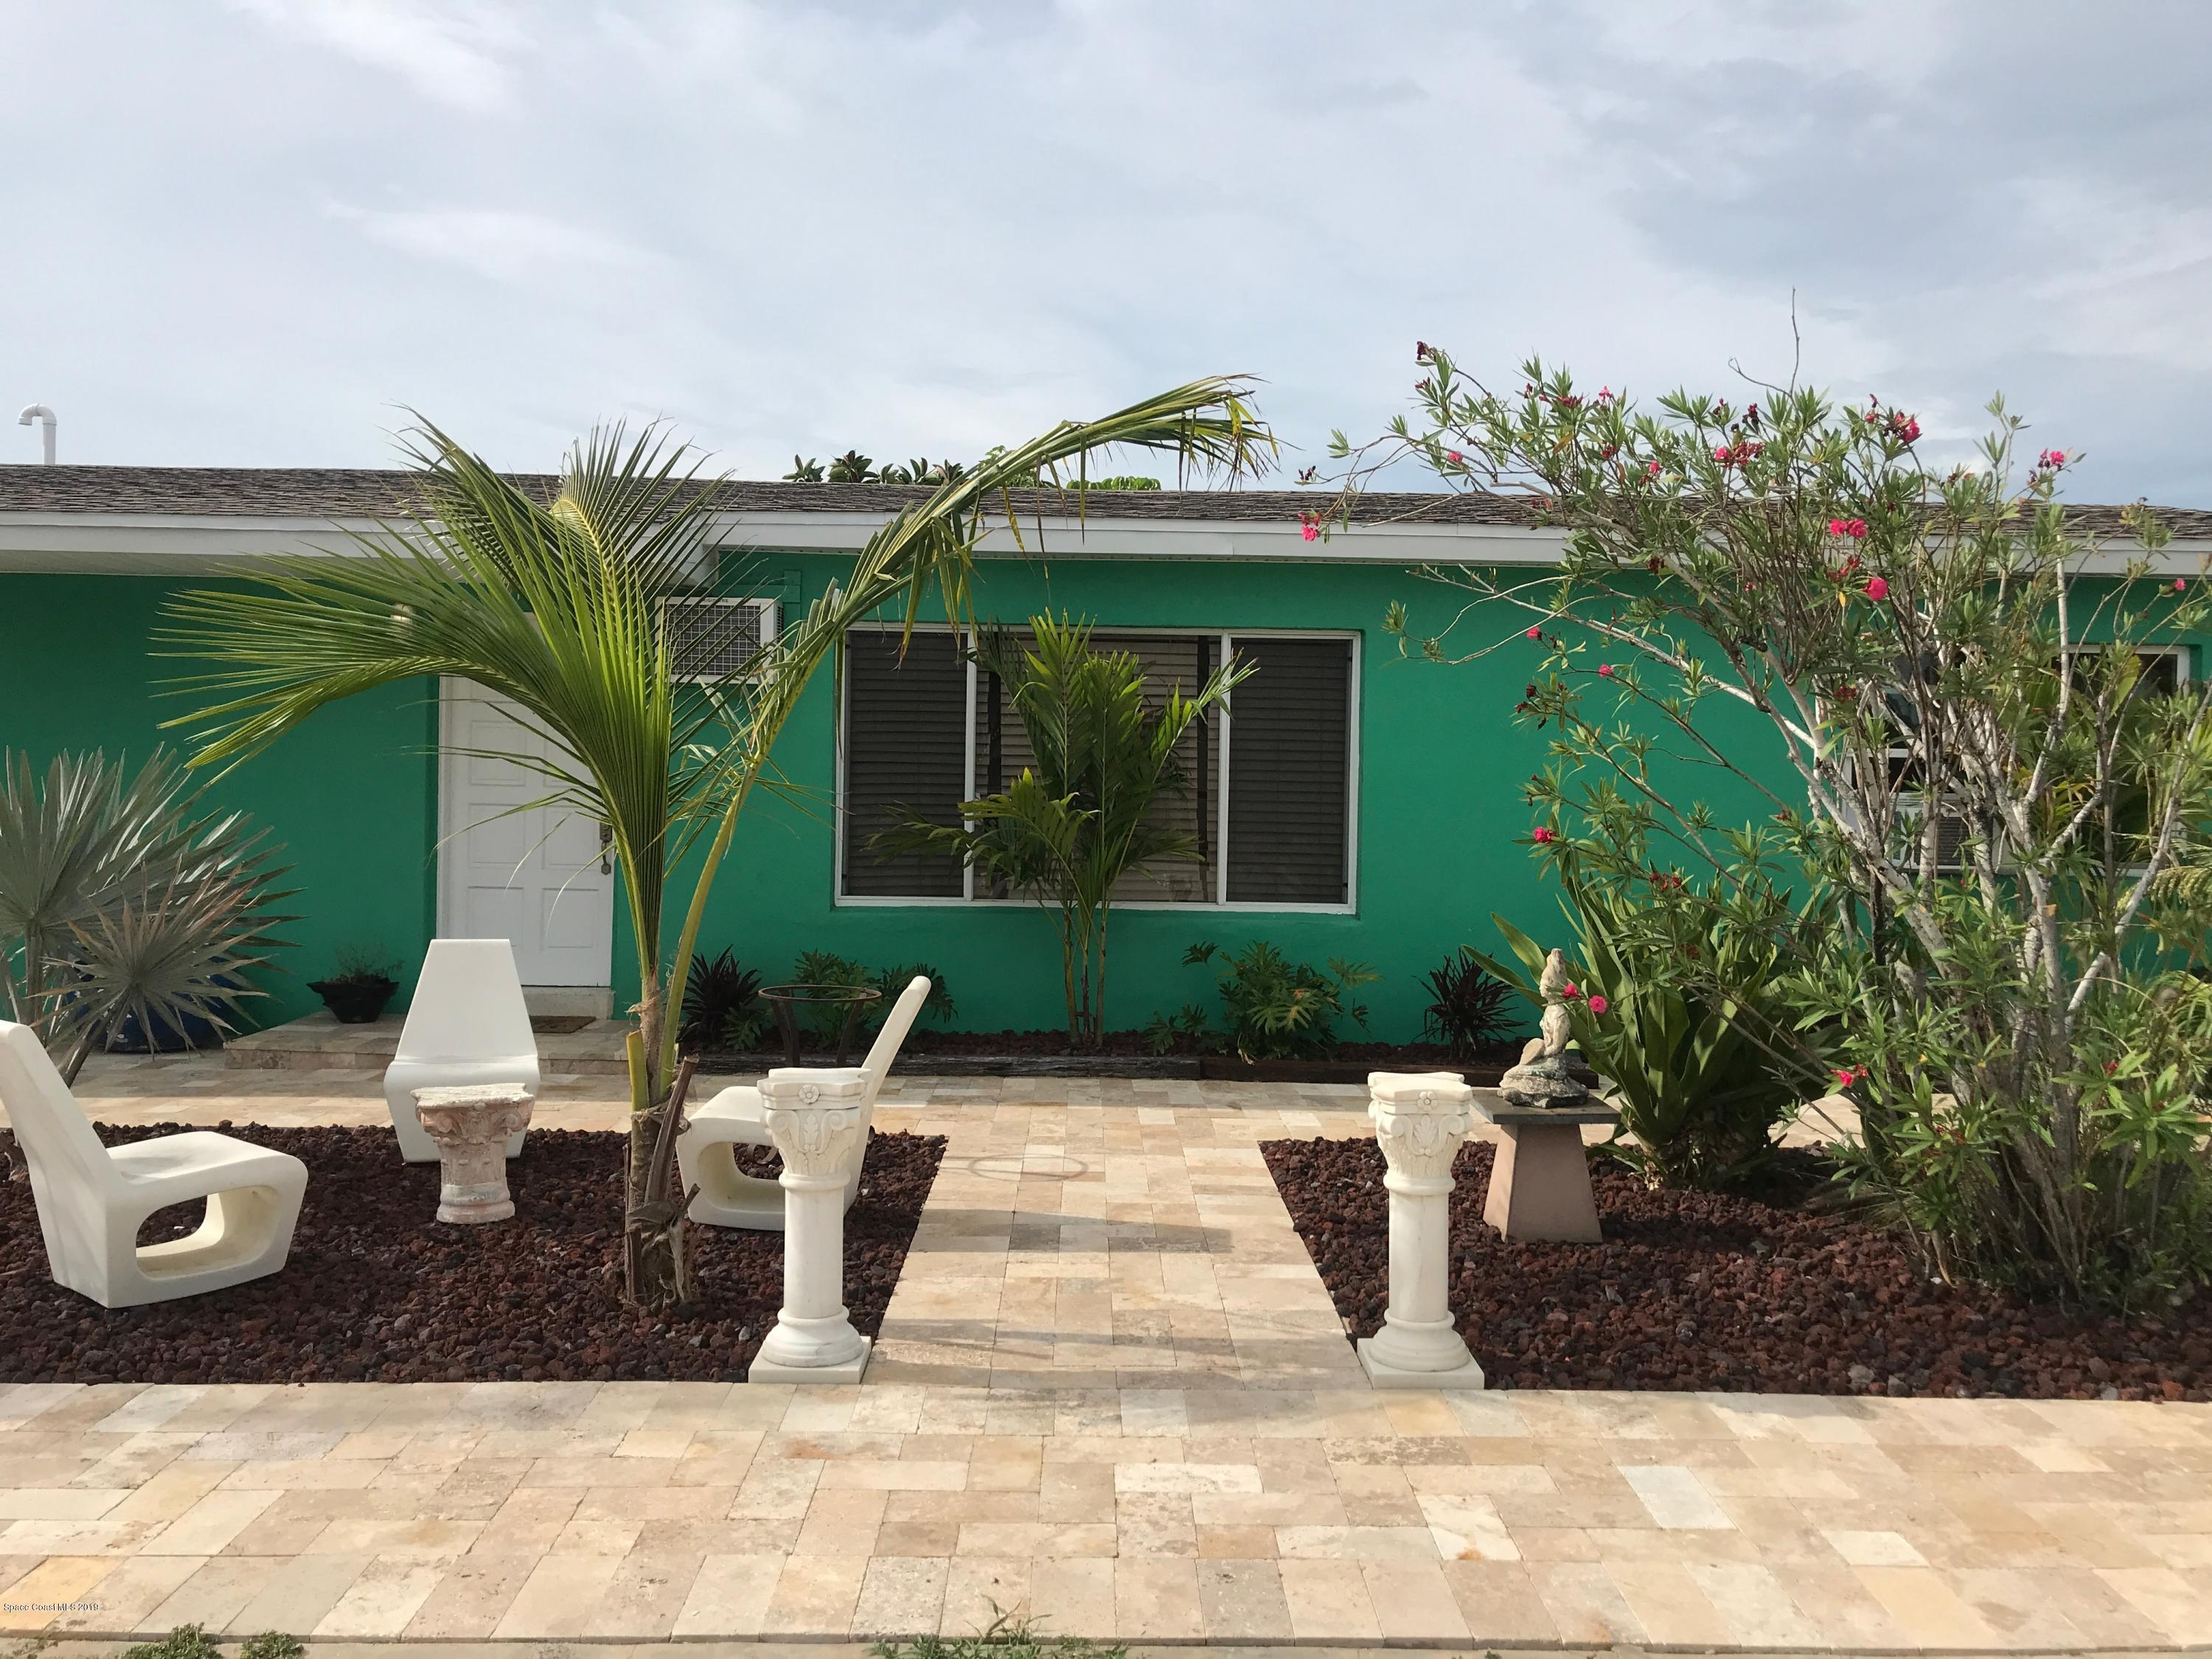 Multi-Family Homes for Sale at 105 NE 3rd Satellite Beach, Florida 32937 United States